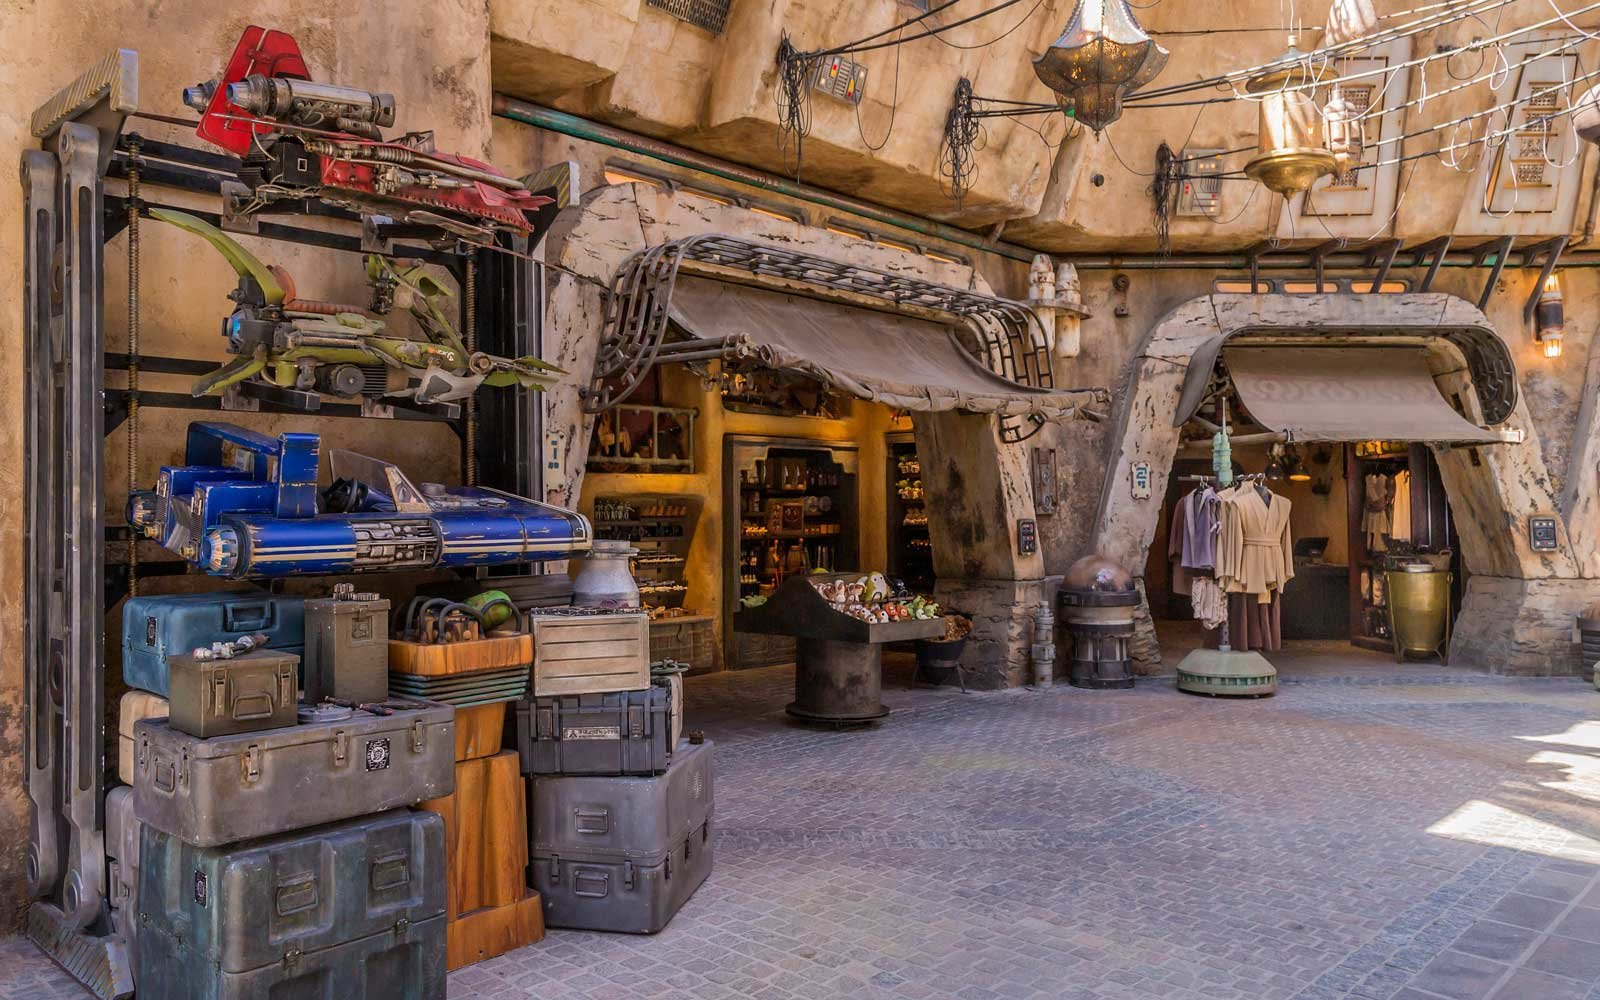 Don't Leave 'Star Wars': Galaxy's Edge Without Buying These Items